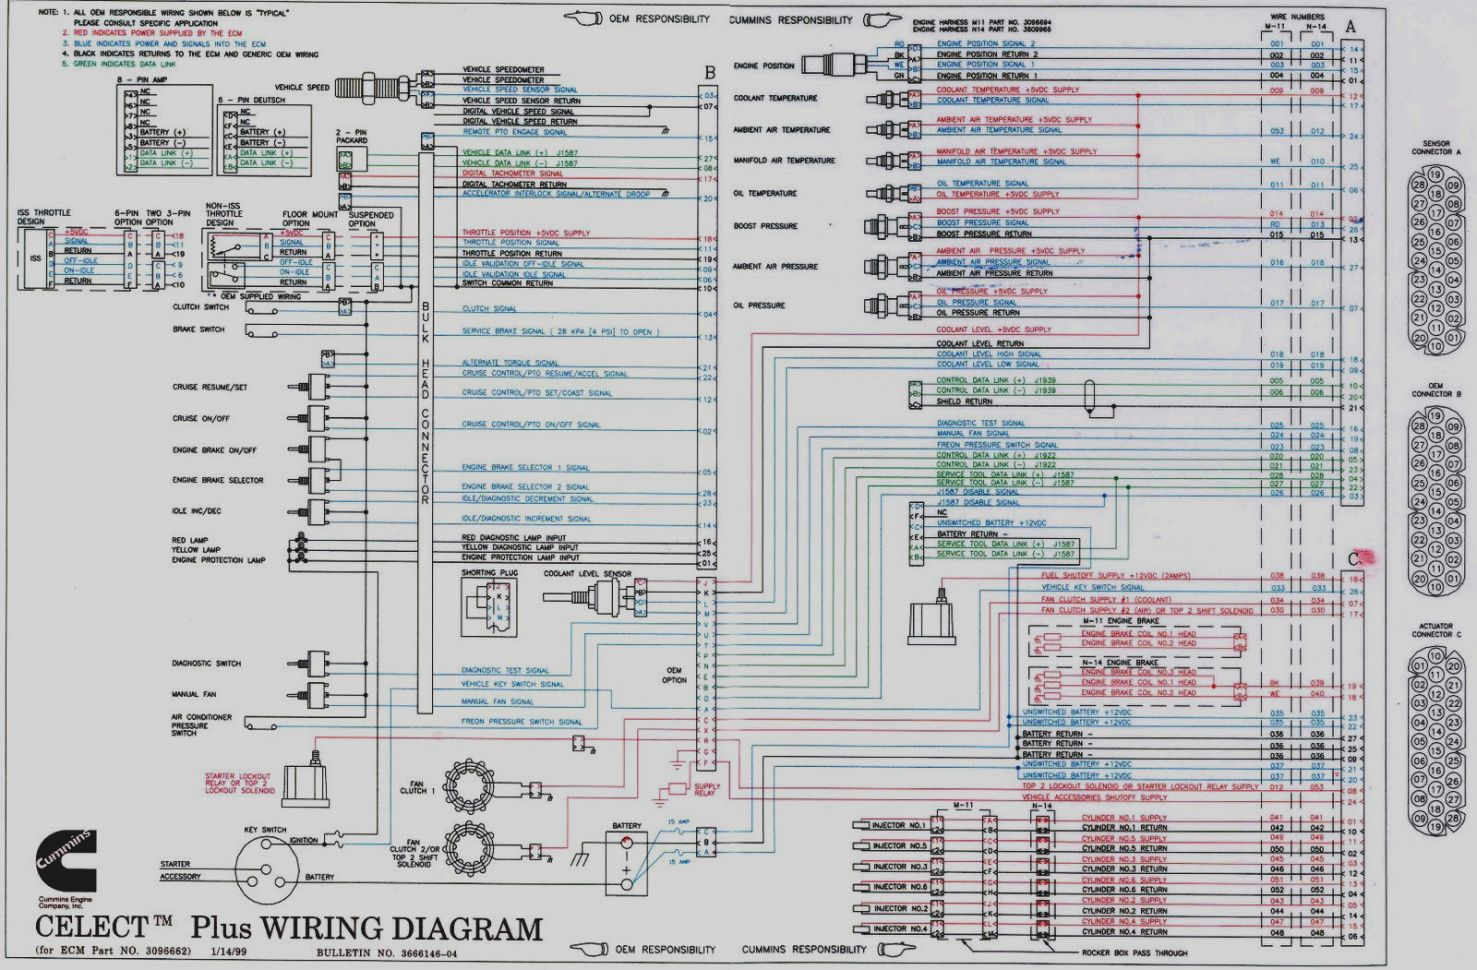 awesome cummins n14 celect plus wiring diagram freightliner columbiaawesome cummins n14 celect plus wiring diagram freightliner [ 1477 x 970 Pixel ]